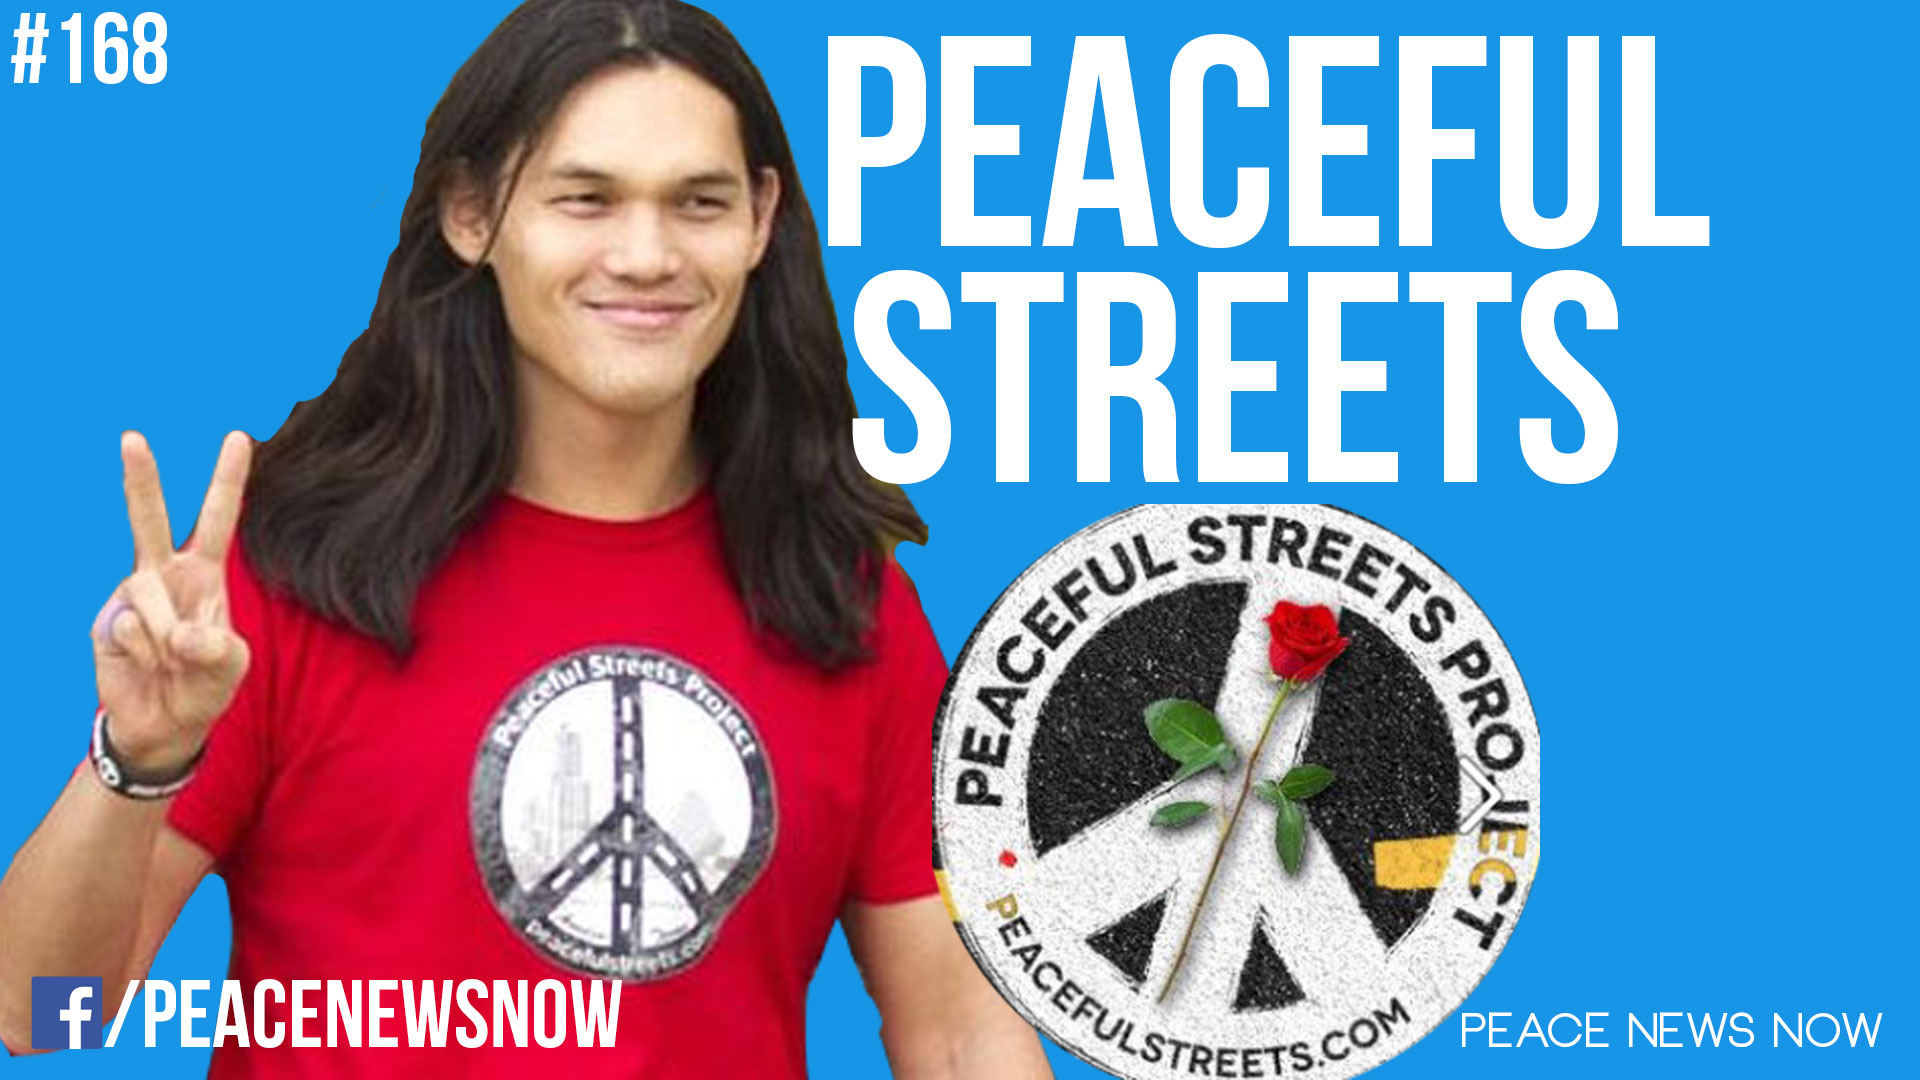 168 2nd Annual Peaceful Streets Summit